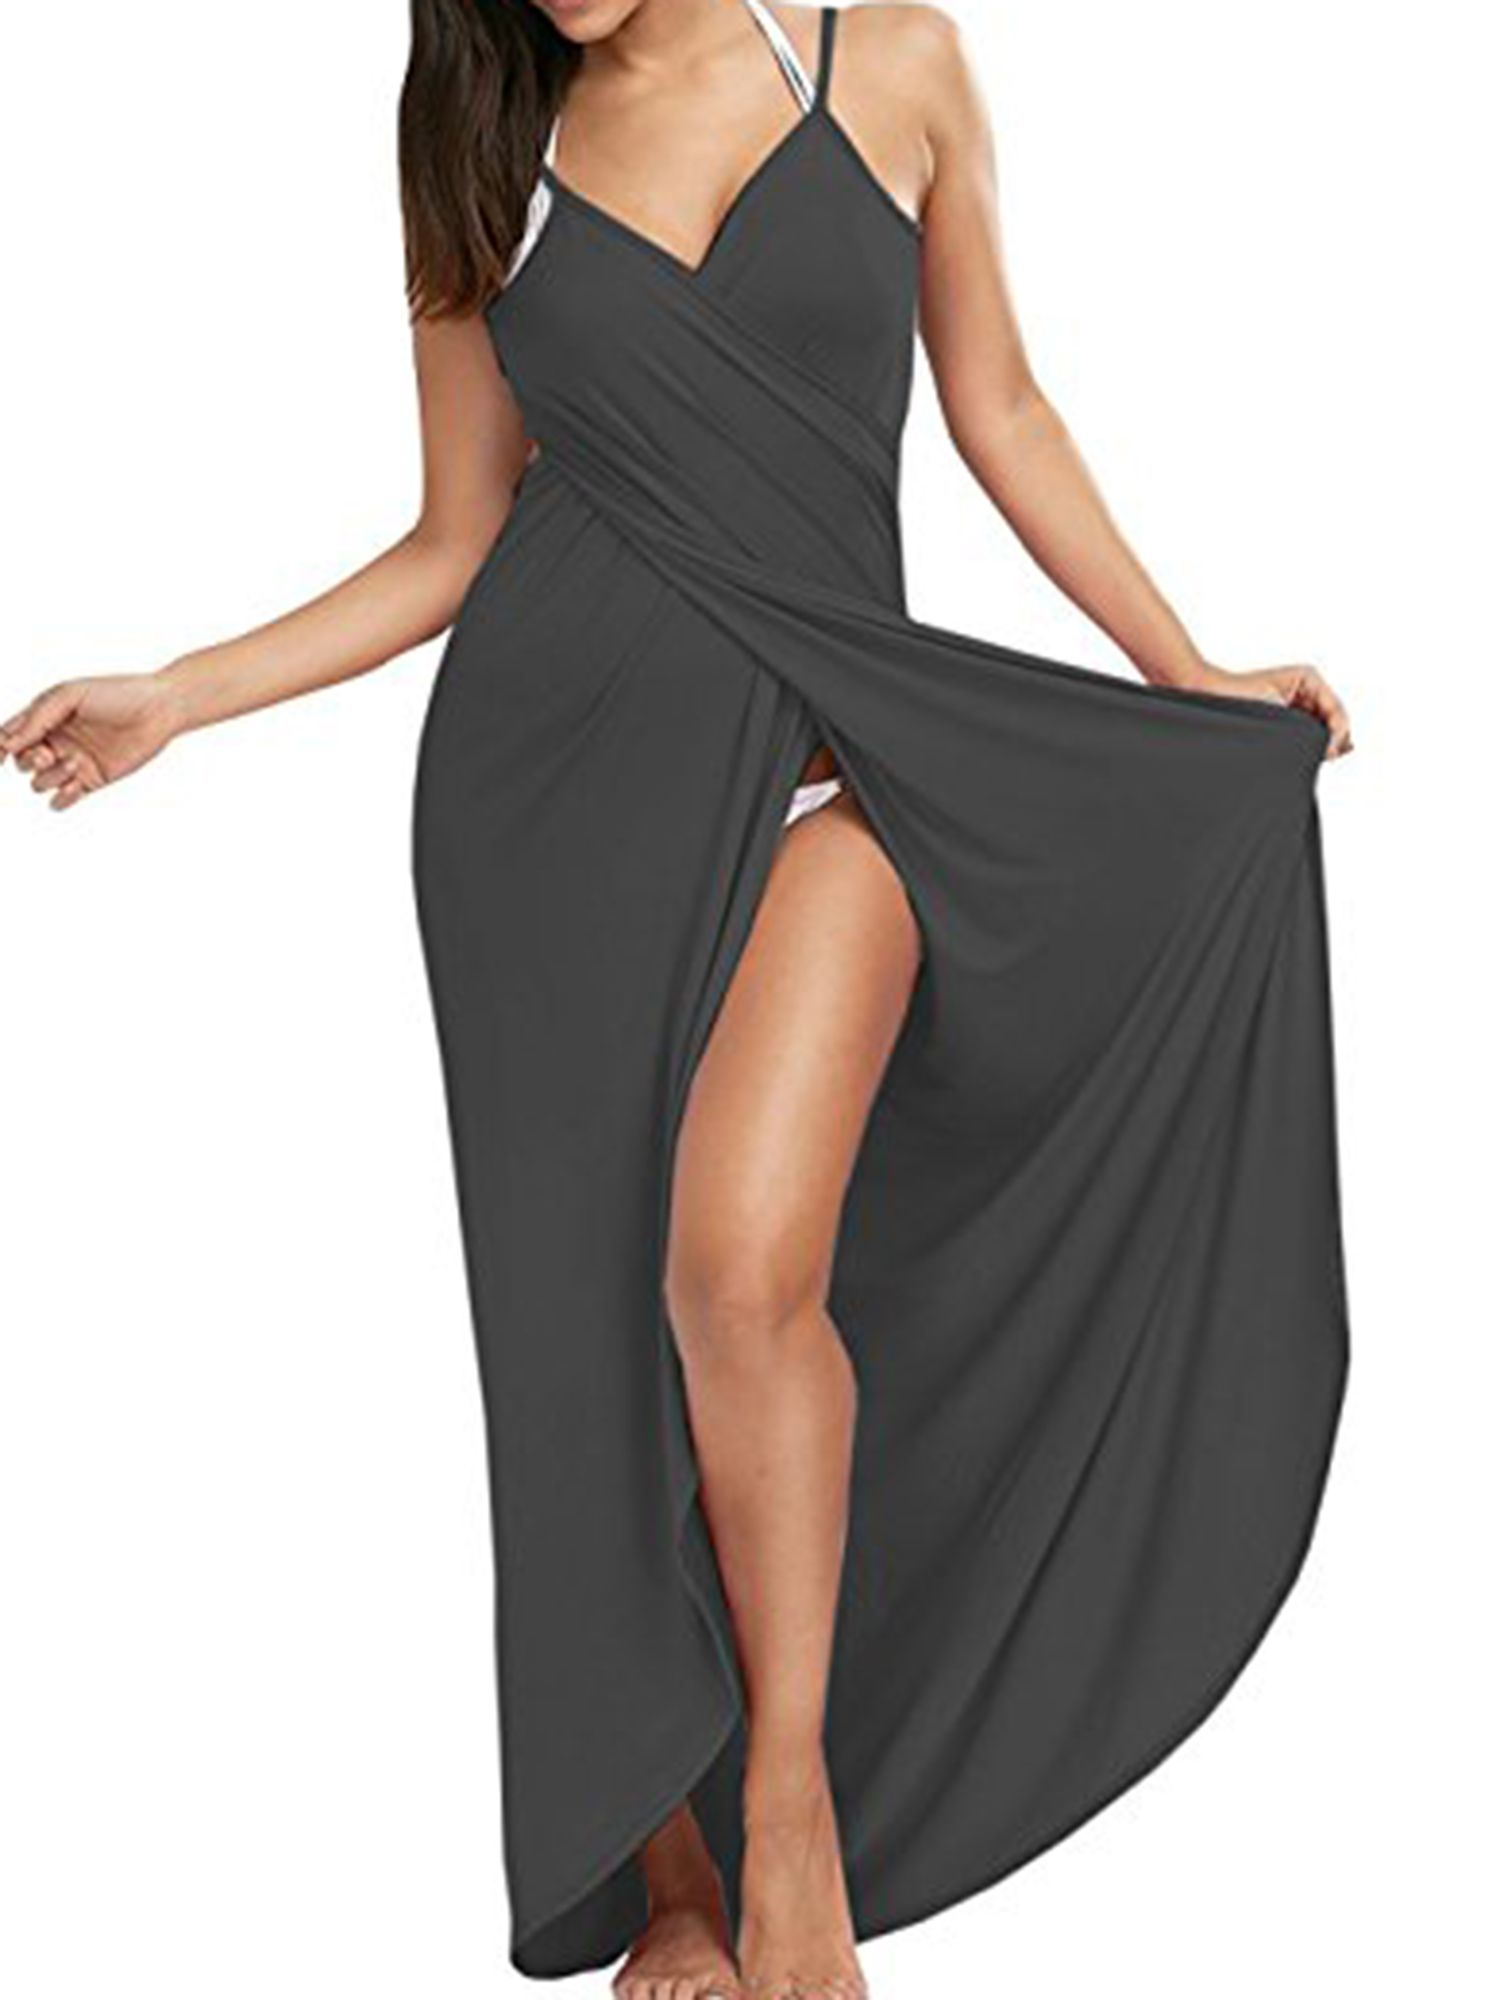 df6da28c30 SAYFUT Women's Sexy Deep V-Neckline Bikini Wrap Swimsuit Cover Up Backless  Long Beach Dress Plus Size Solid Color Black/Deep Gray/Pink L-5XL#Wrap, # Bikini, ...